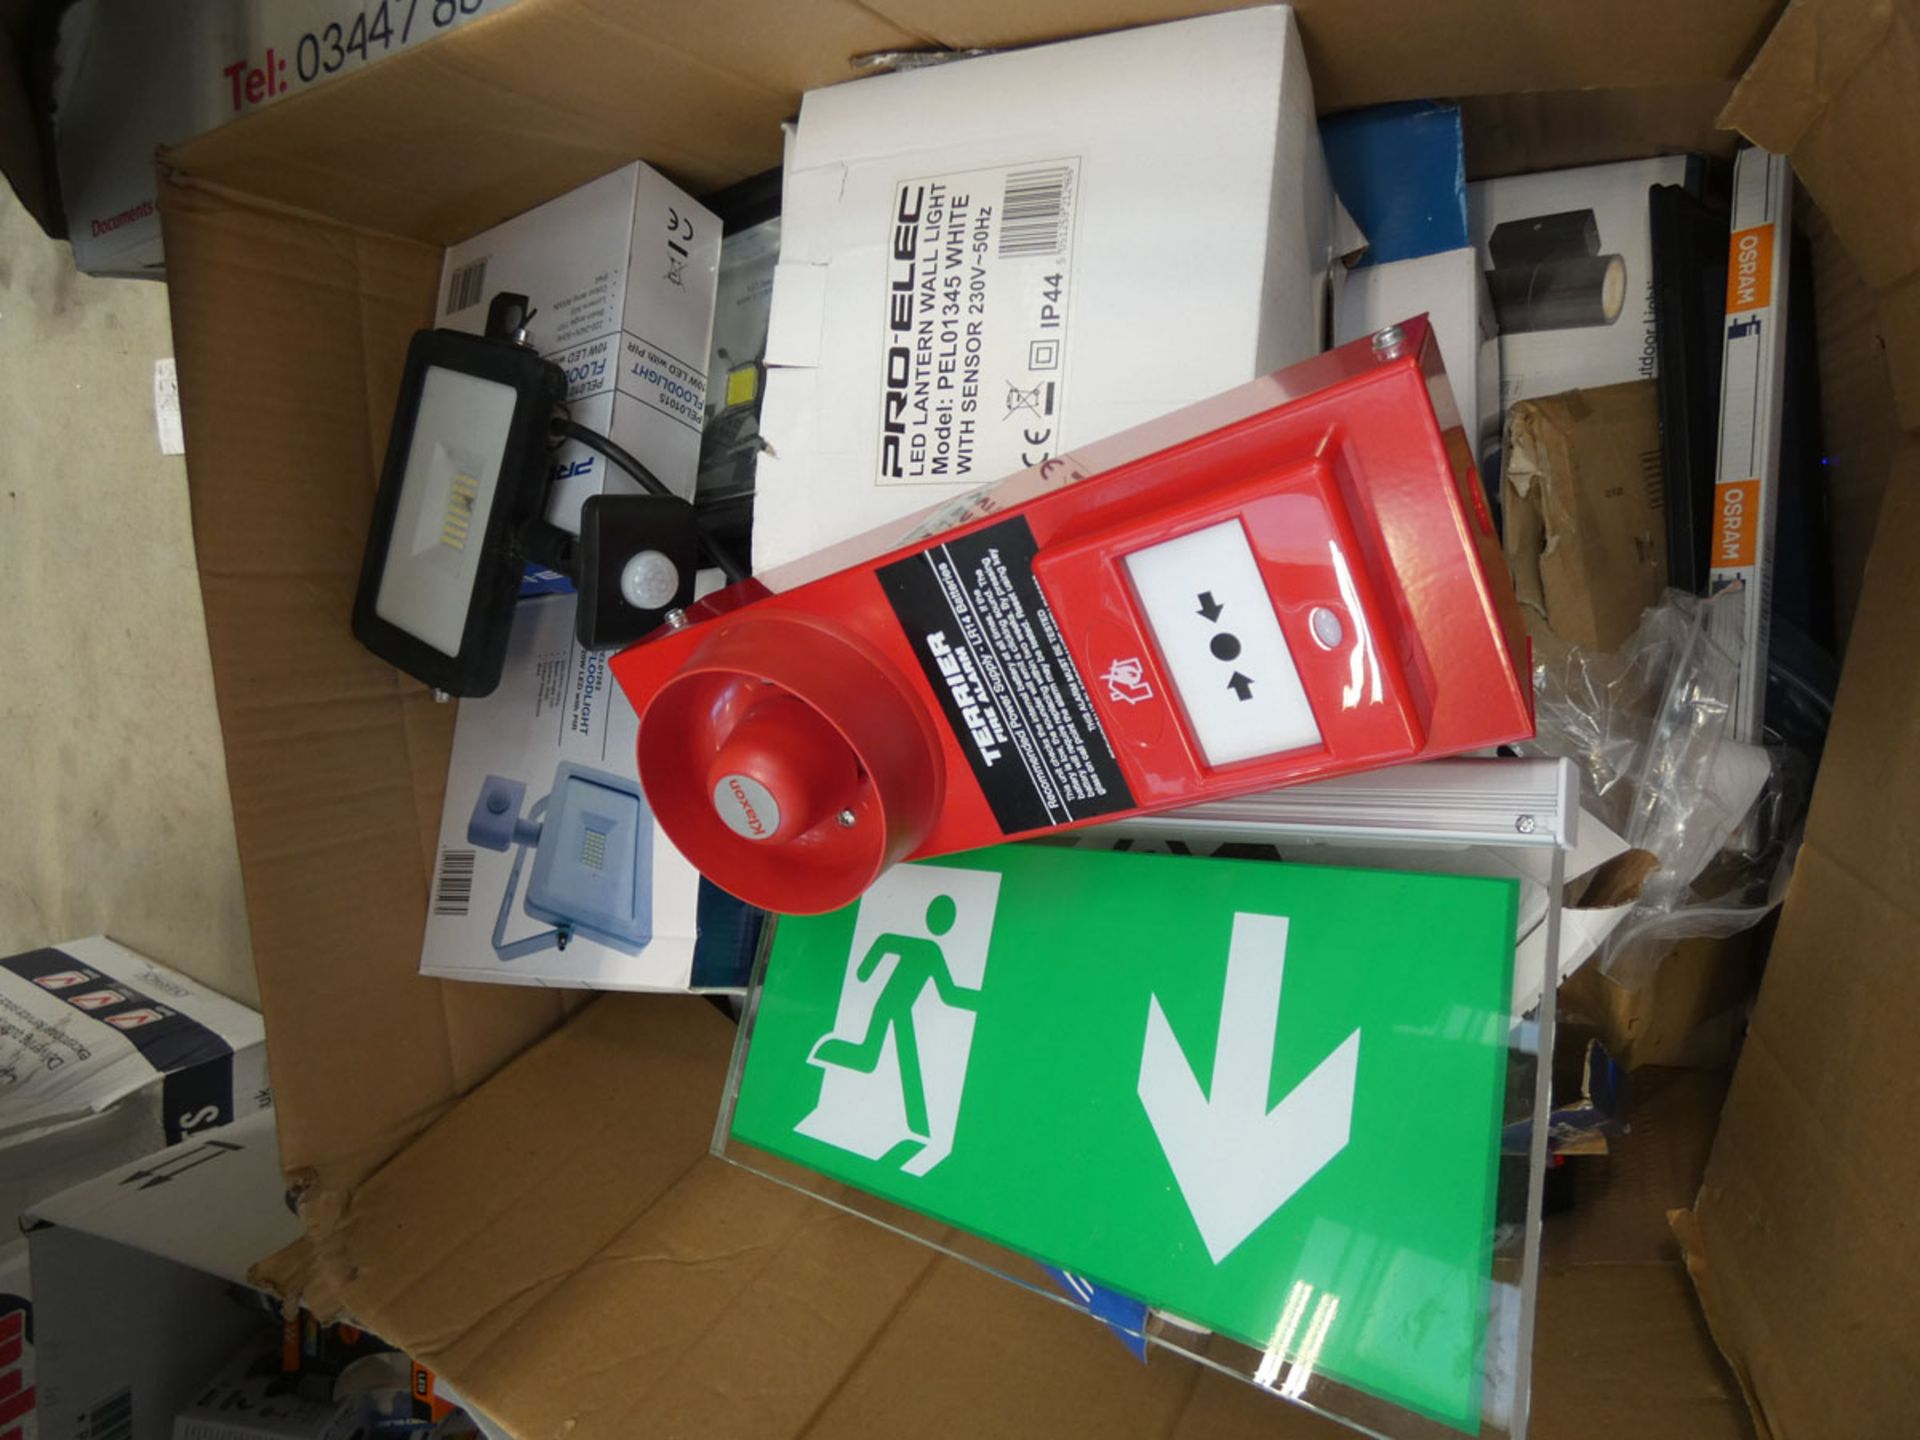 Box of floodlights, exit signs, and switches